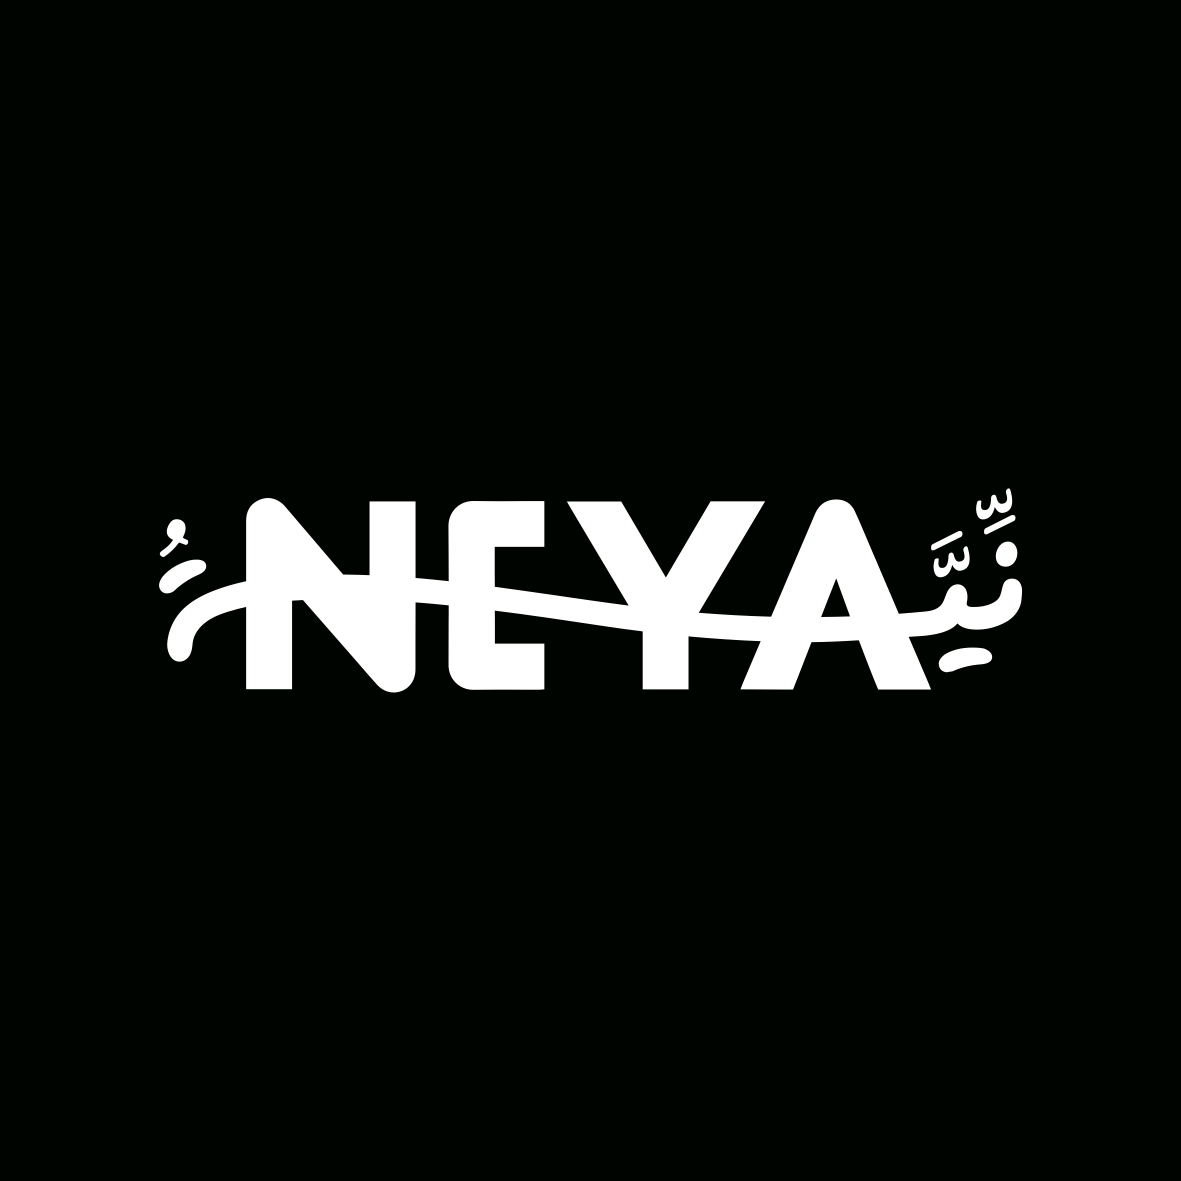 Neya for Information Technology and Sustainable Development